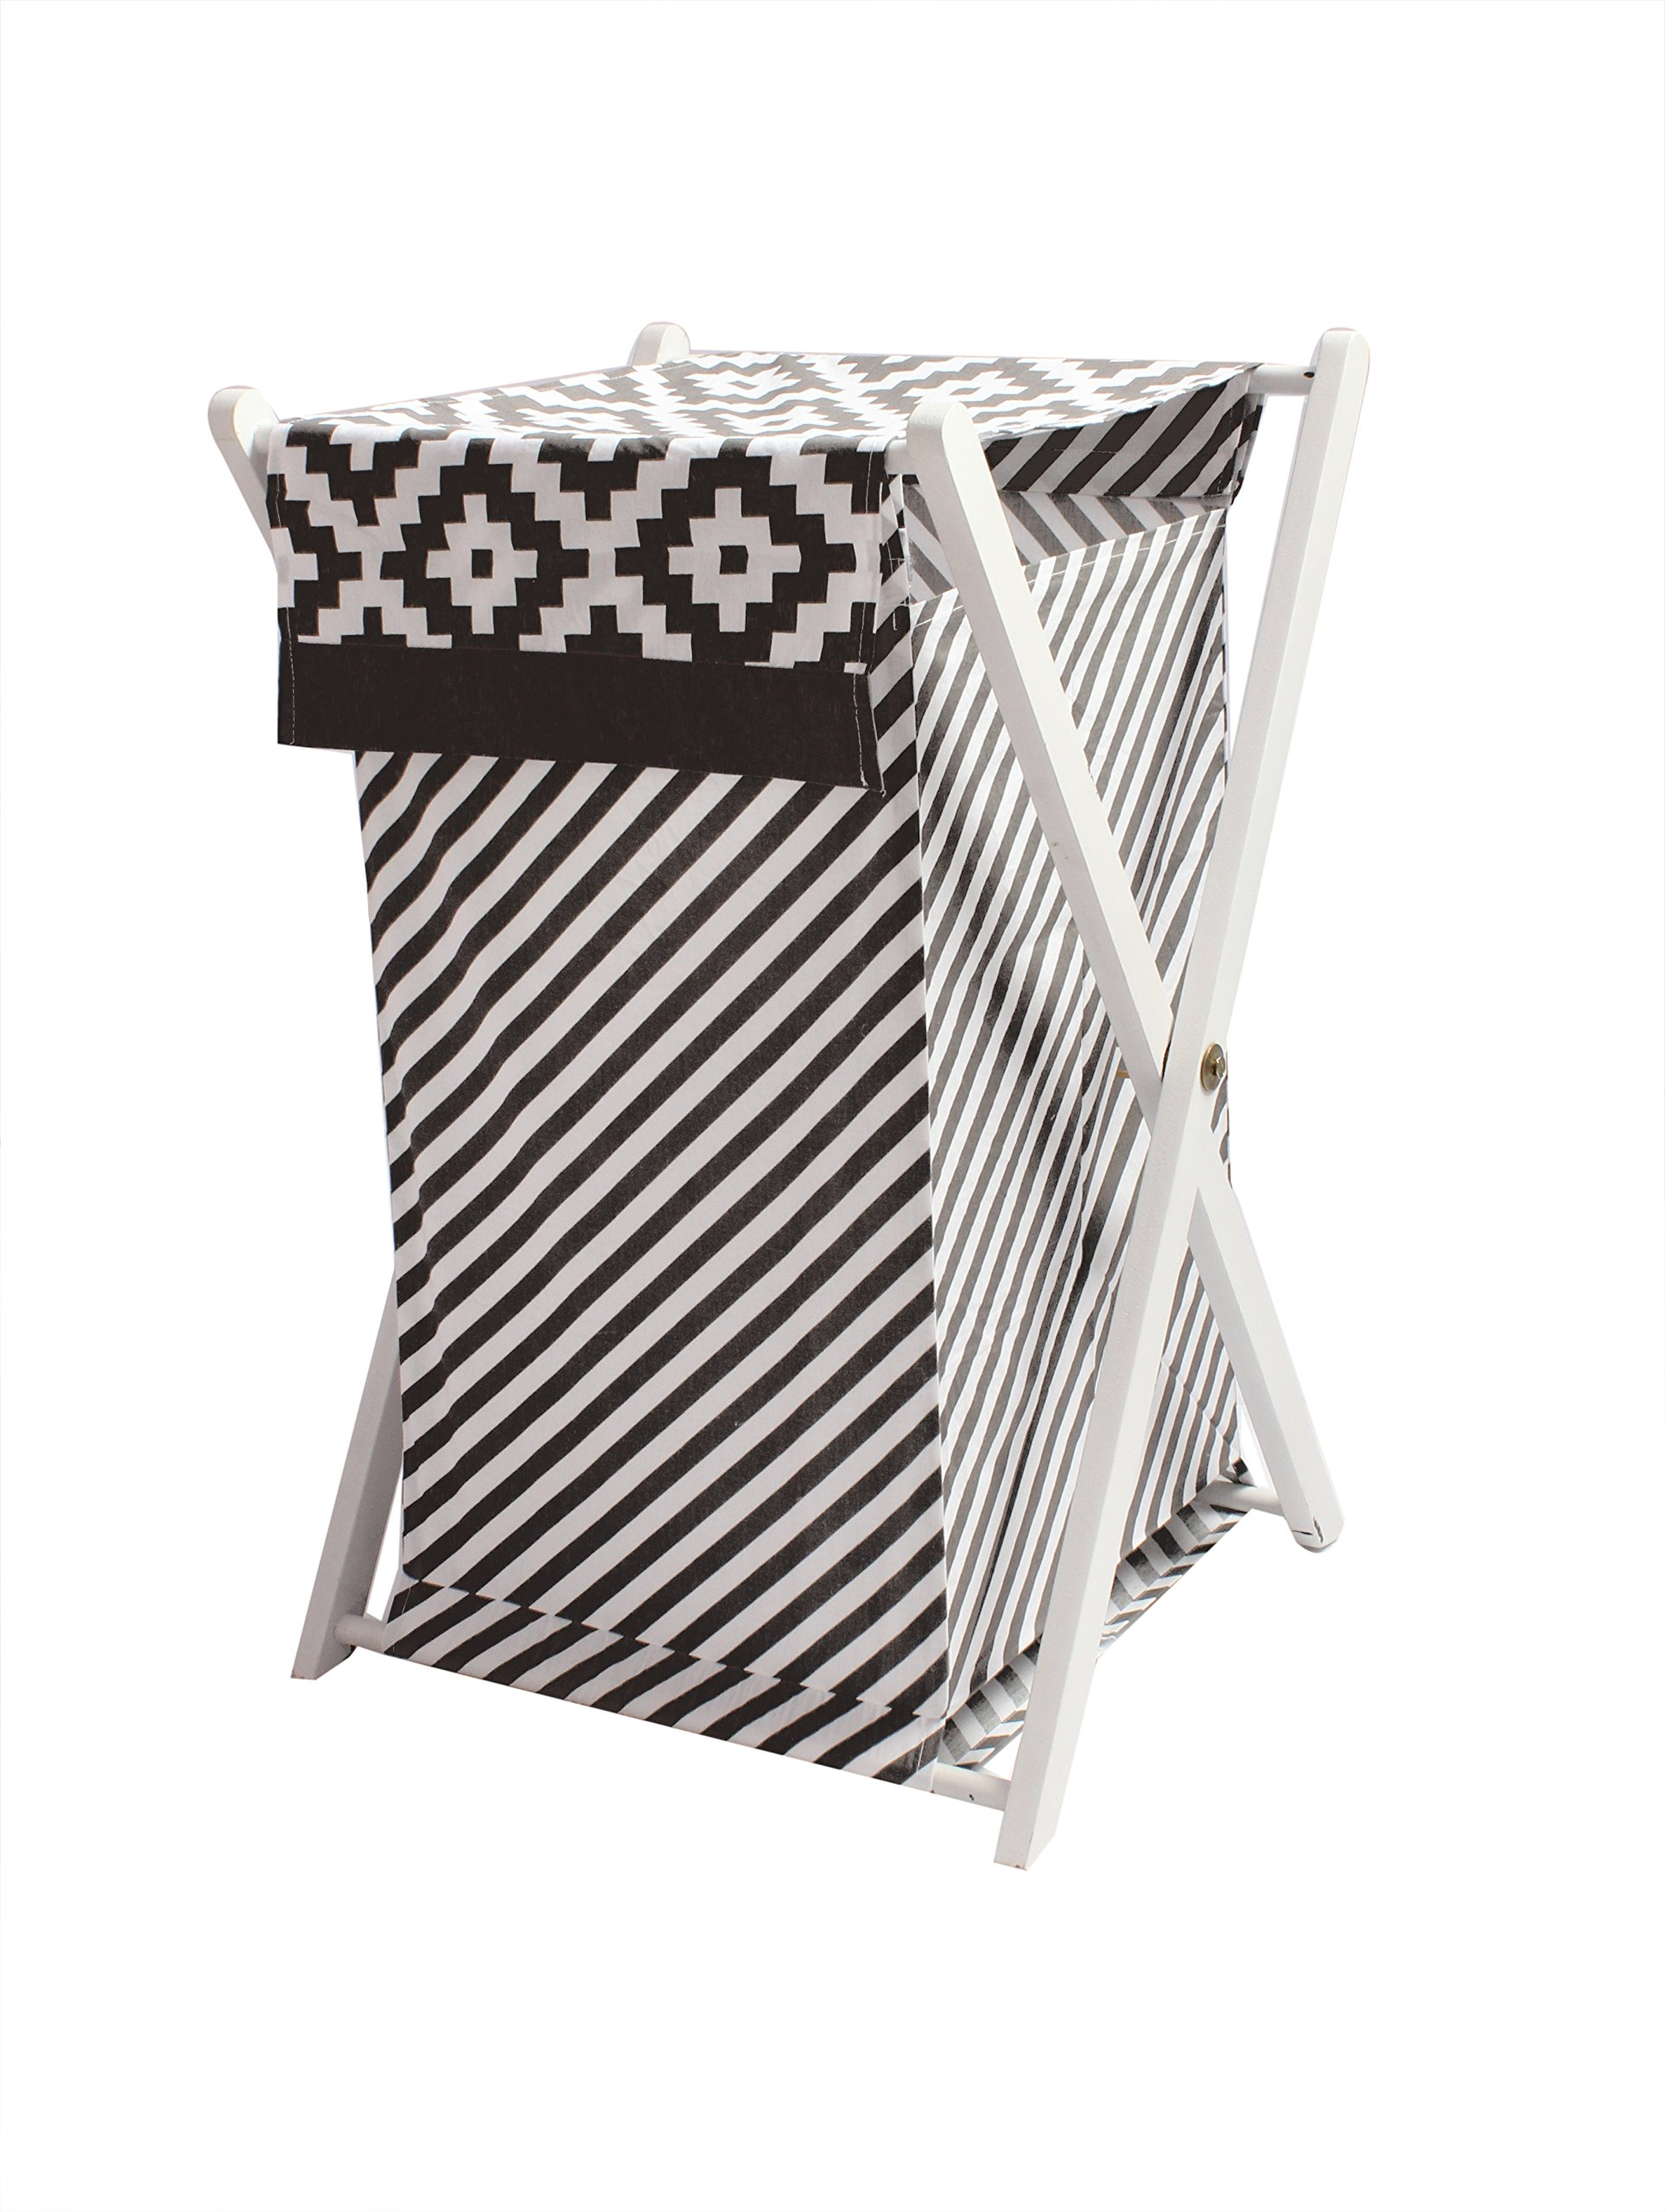 Bacati Love Hamper cover, Black/white